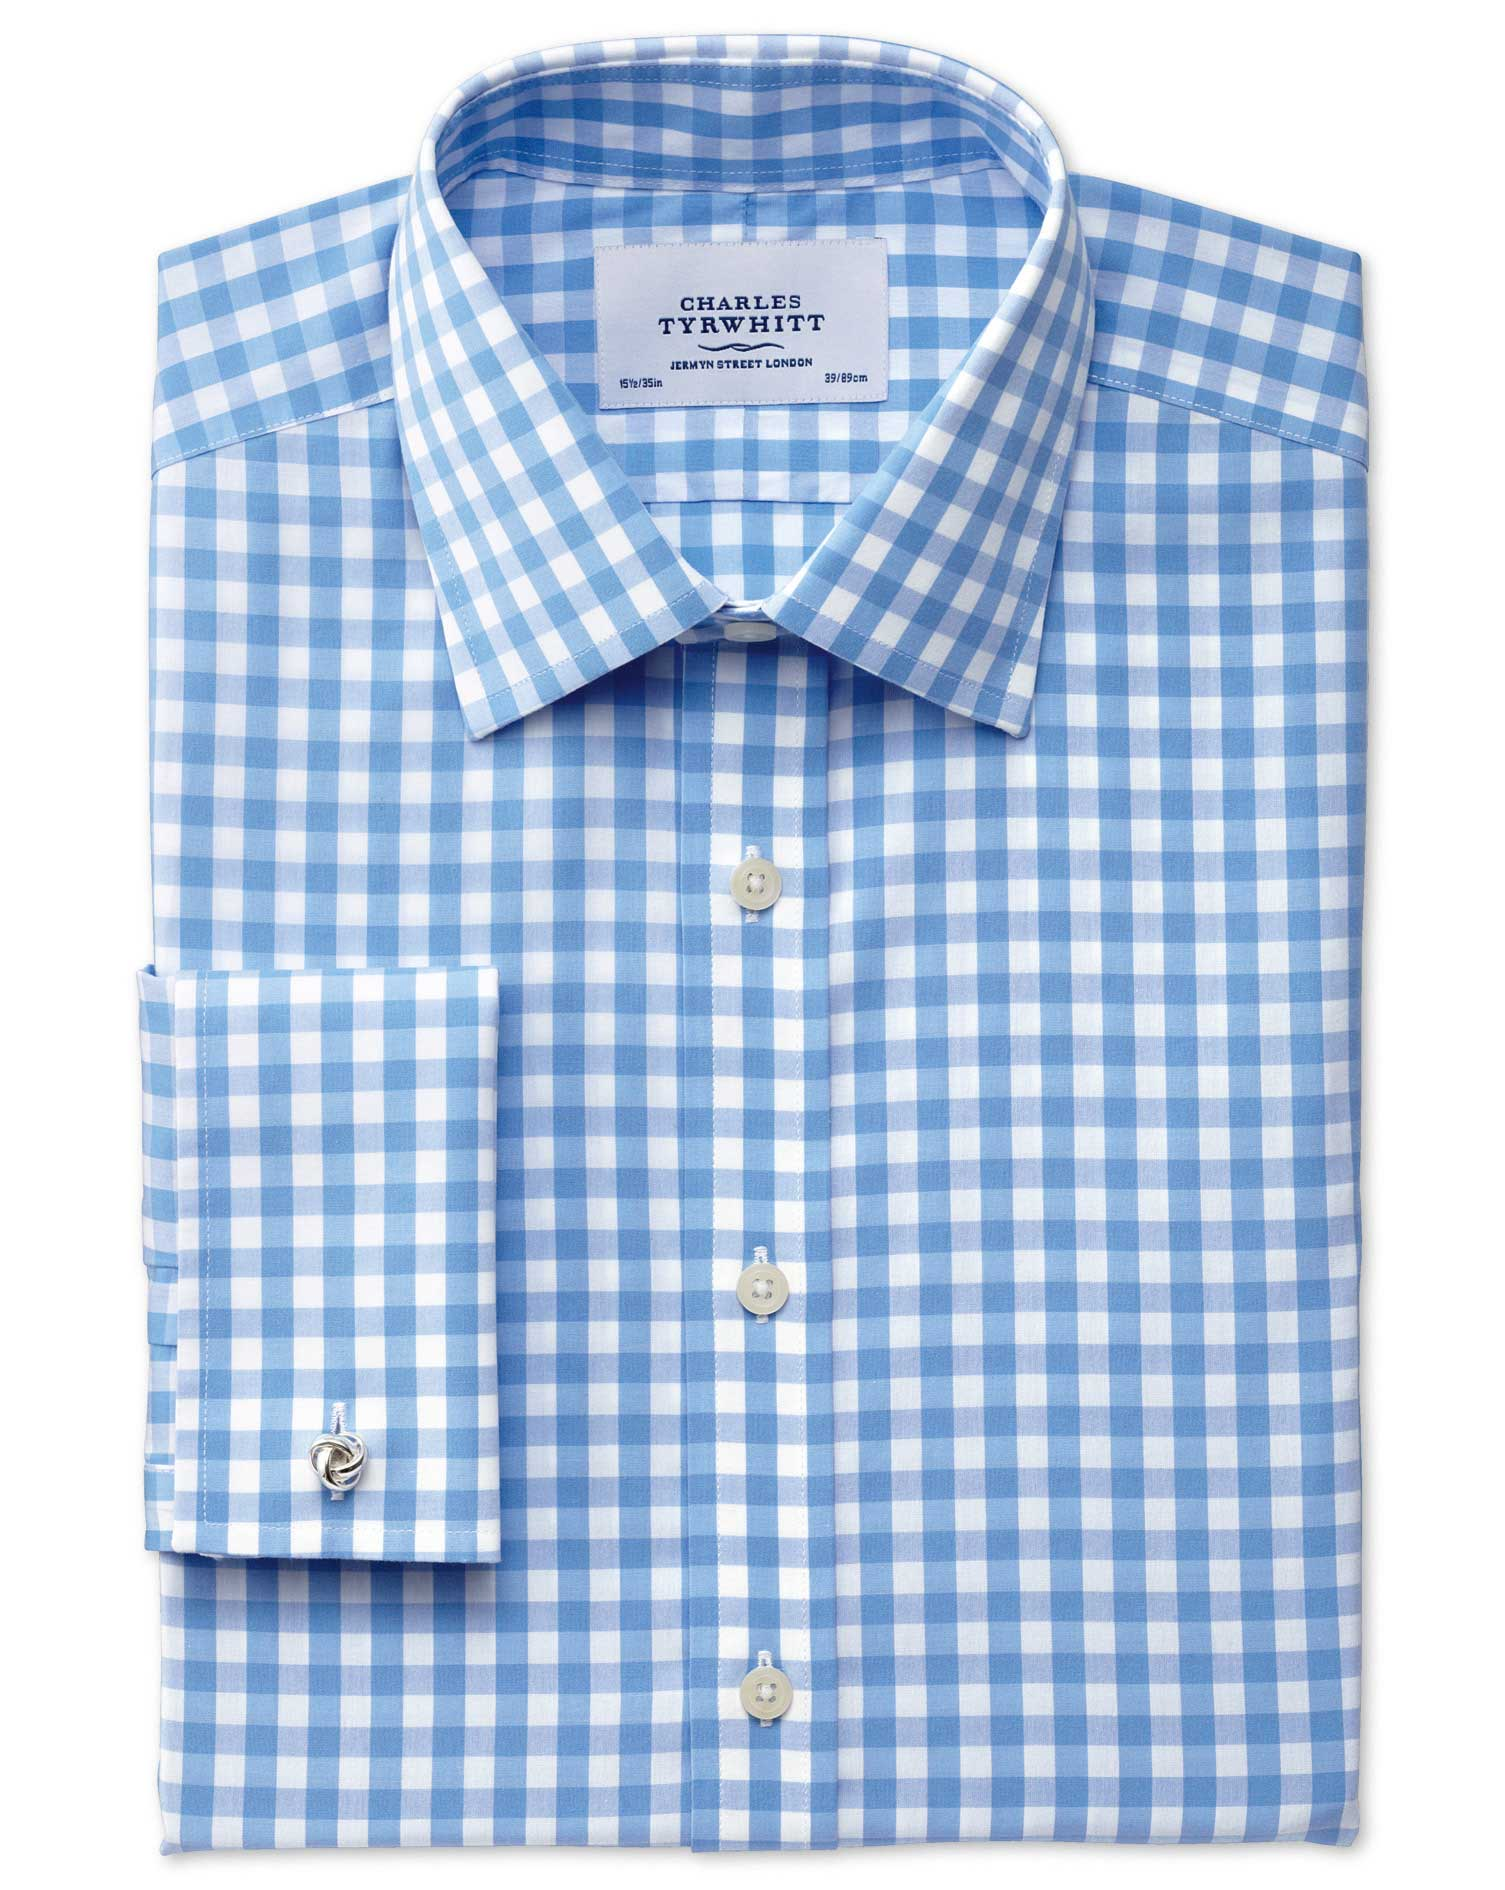 Slim Fit Non-Iron Gingham Sky Blue Cotton Formal Shirt Double Cuff Size 14.5/33 by Charles Tyrwhitt